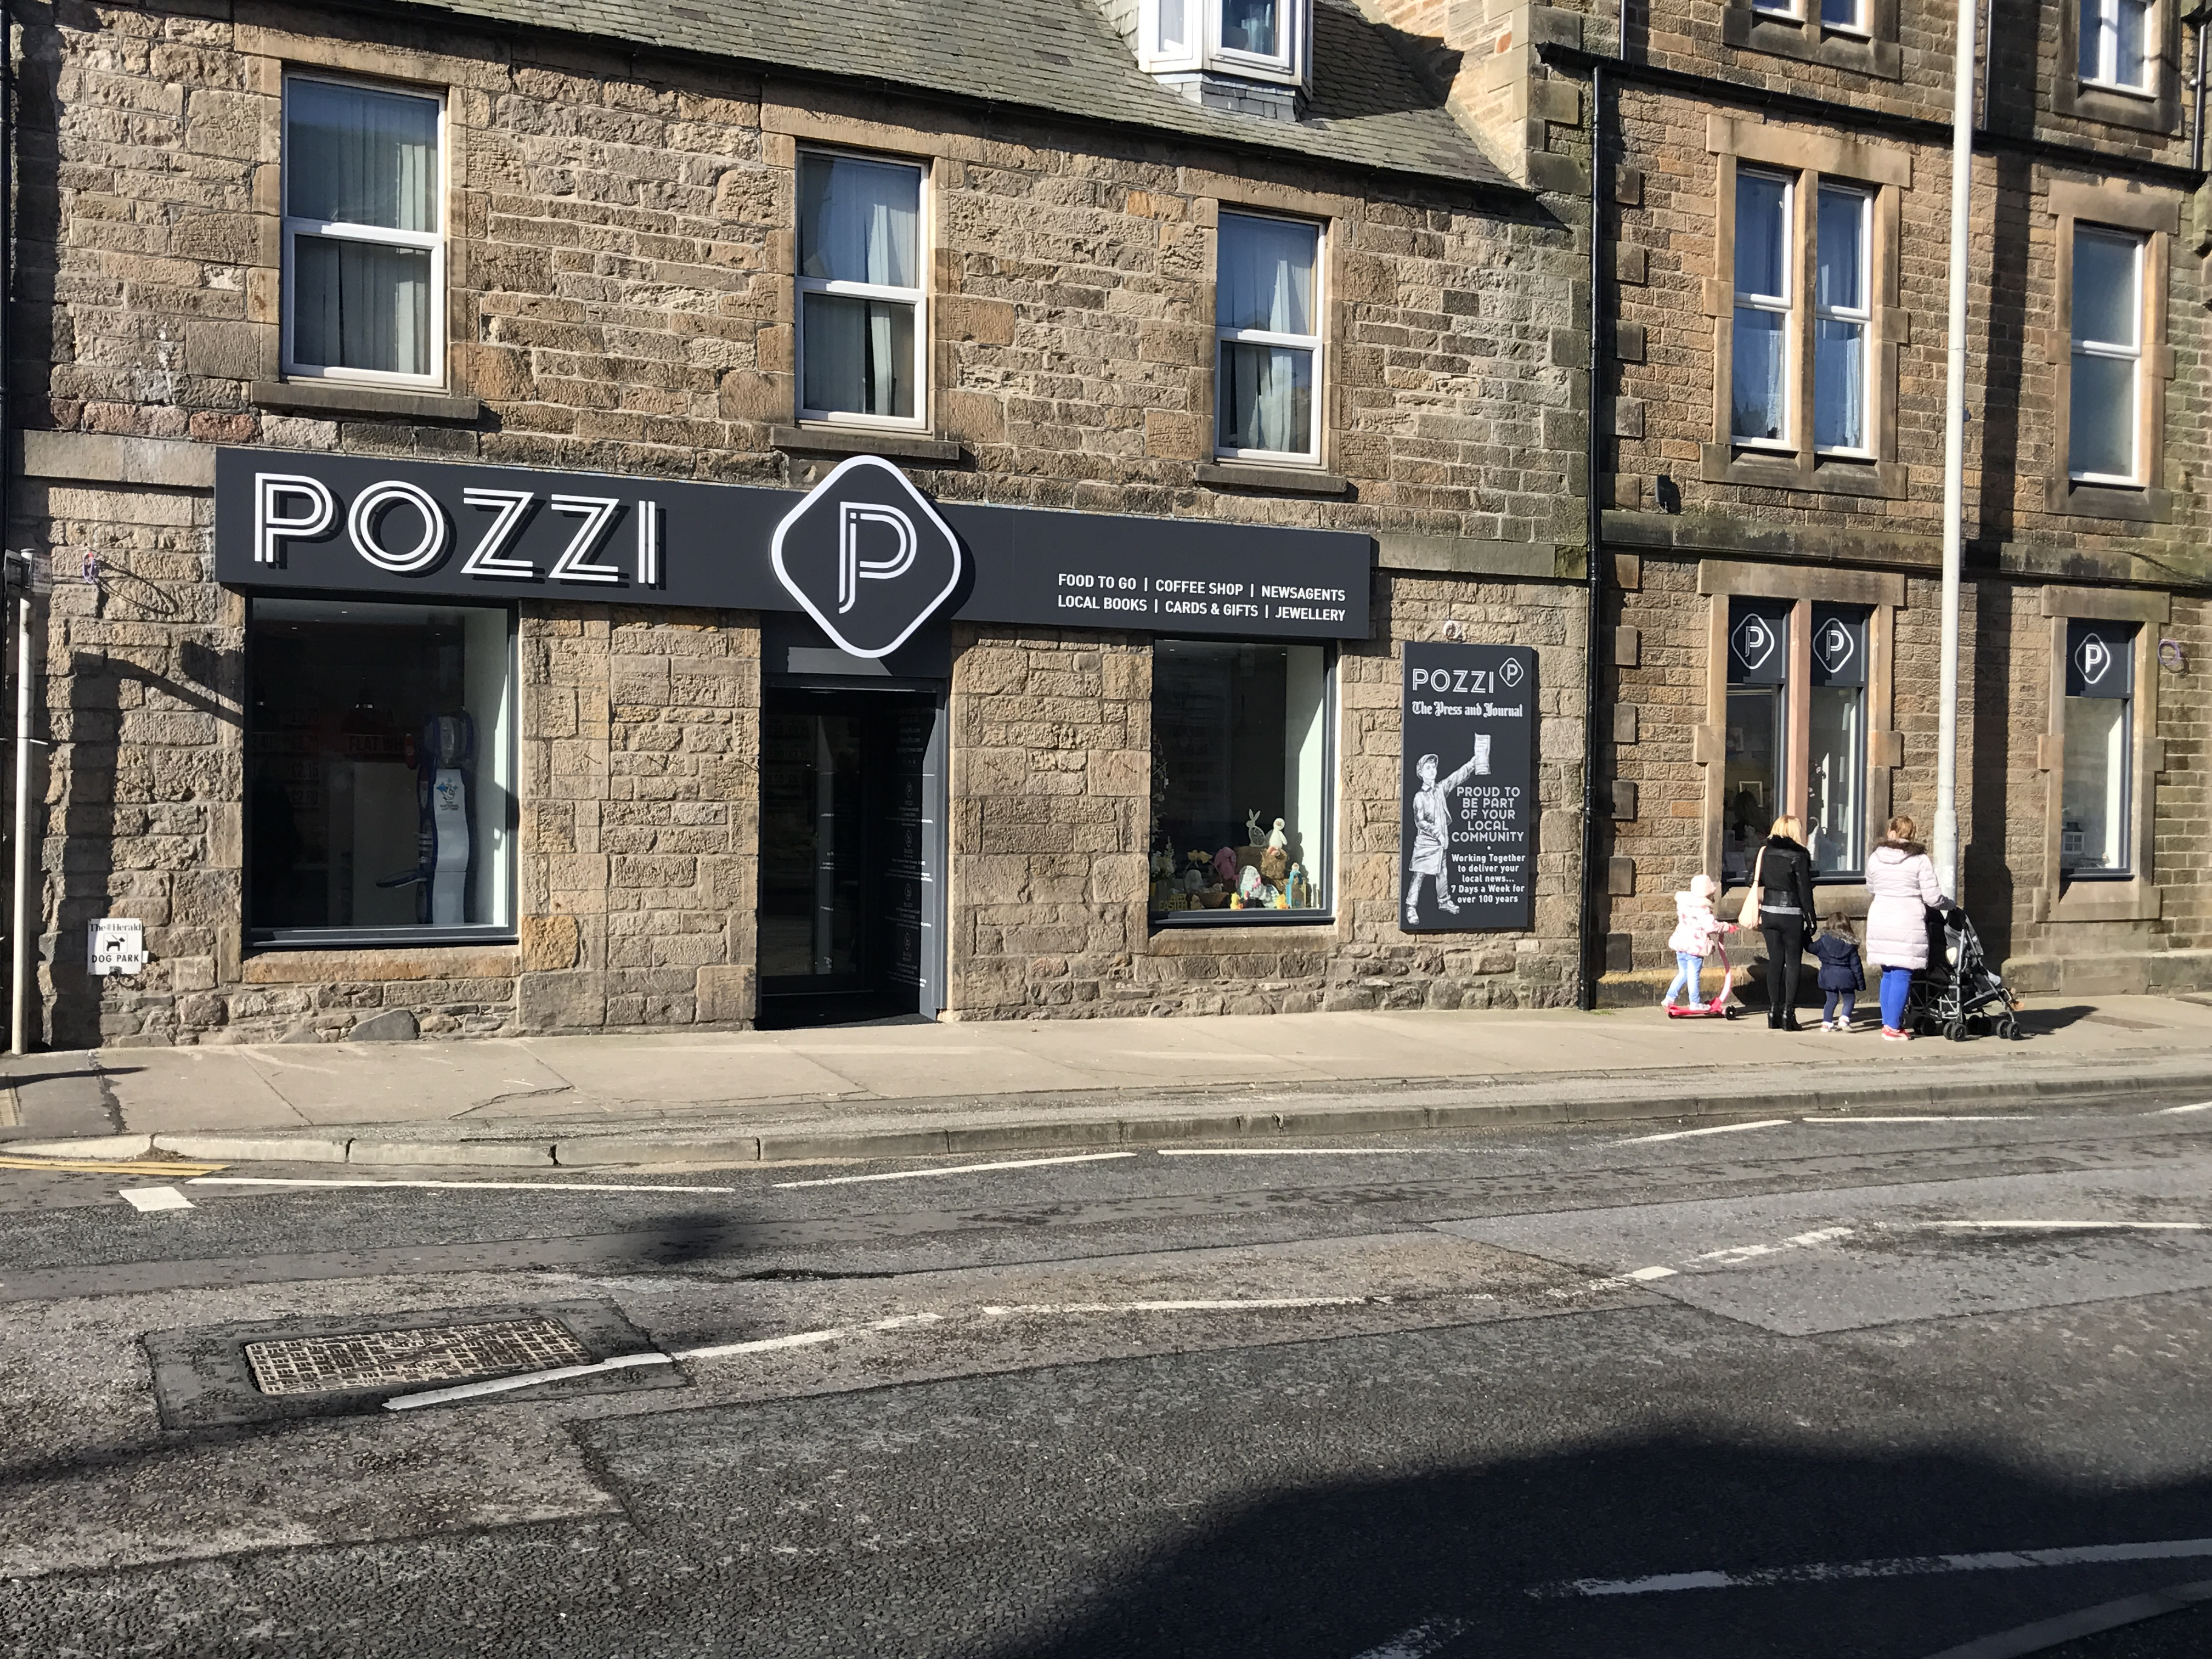 Above: JP Pozzi has been part of the Buckie community for 30 years.